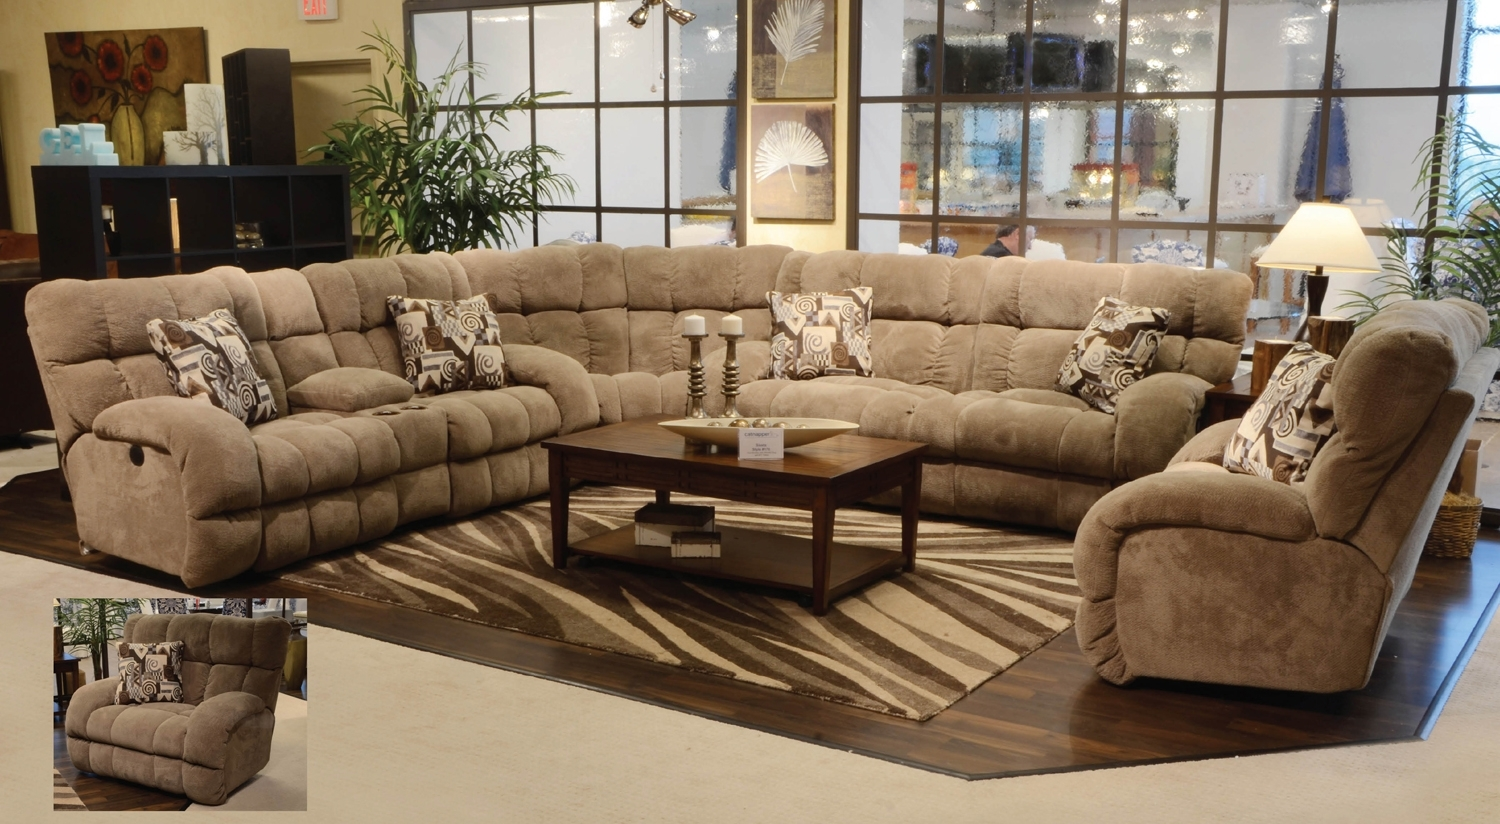 Xxl Sectional Sofa Jacksonville Led Lights U Shaped Big Couch Xl Fabric Sofa Big Sectional Couch Jacksonville